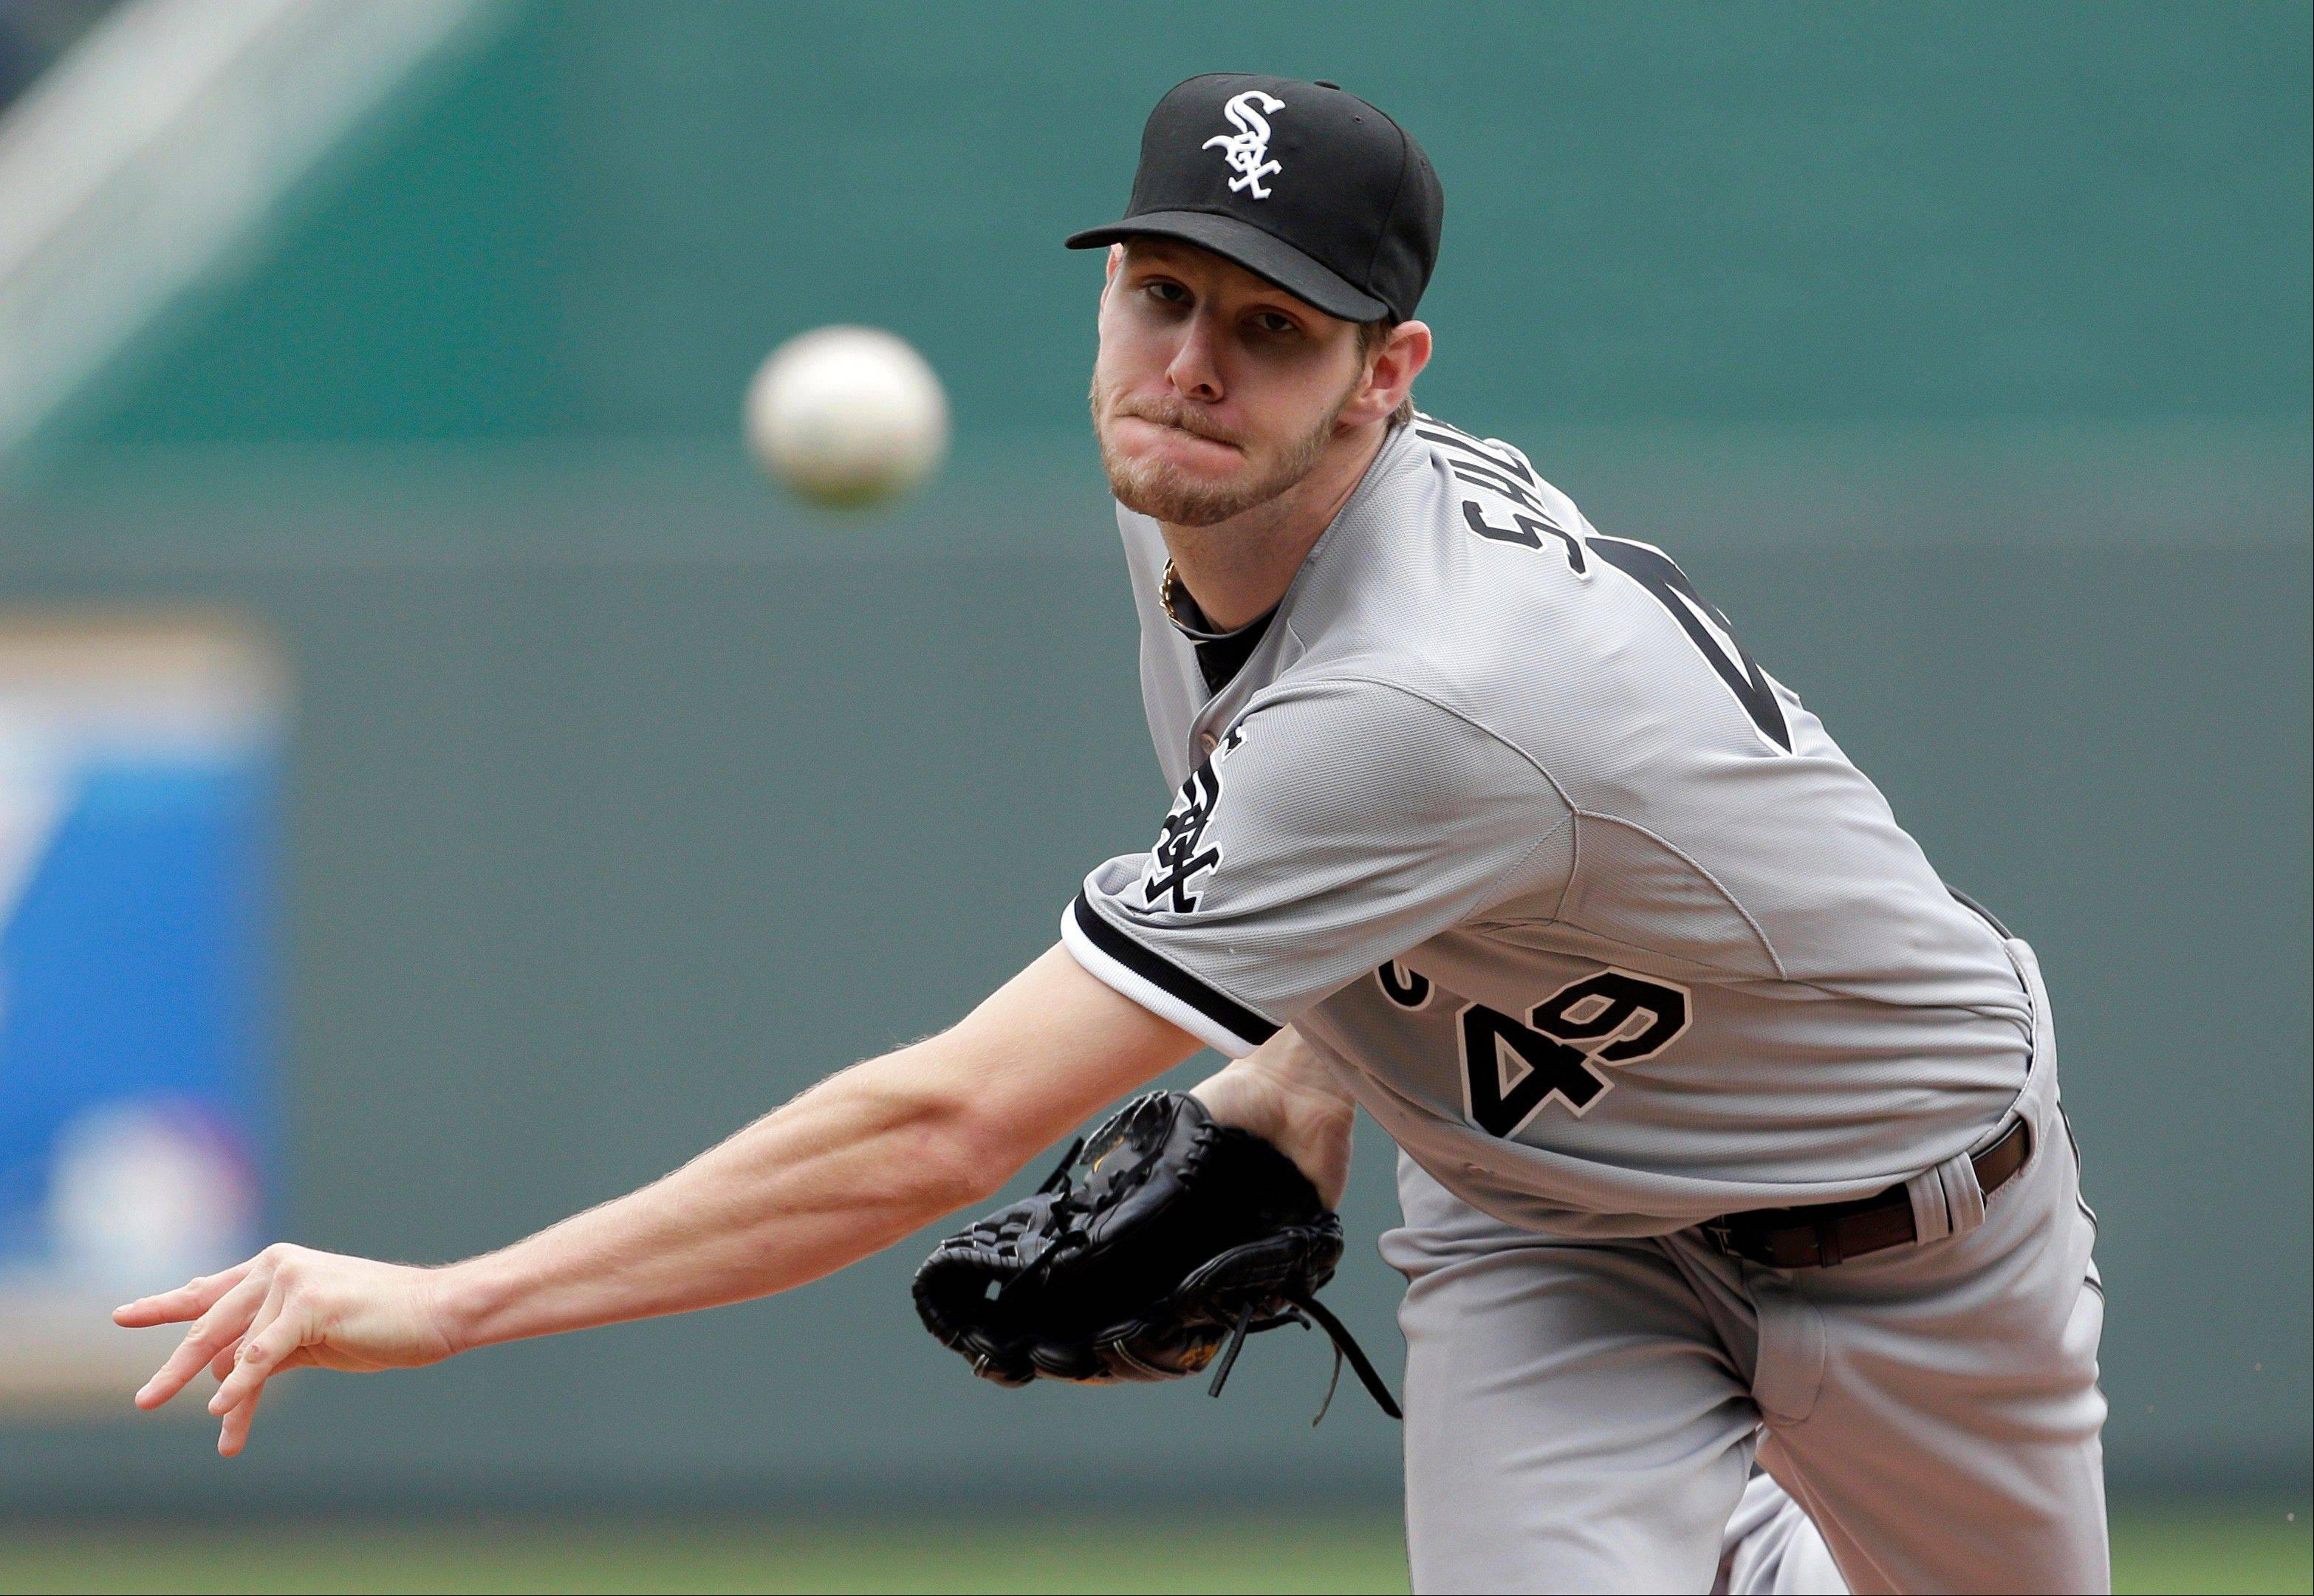 White Sox starting pitcher Chris Sale throws during Monday's first inning in Kansas City.